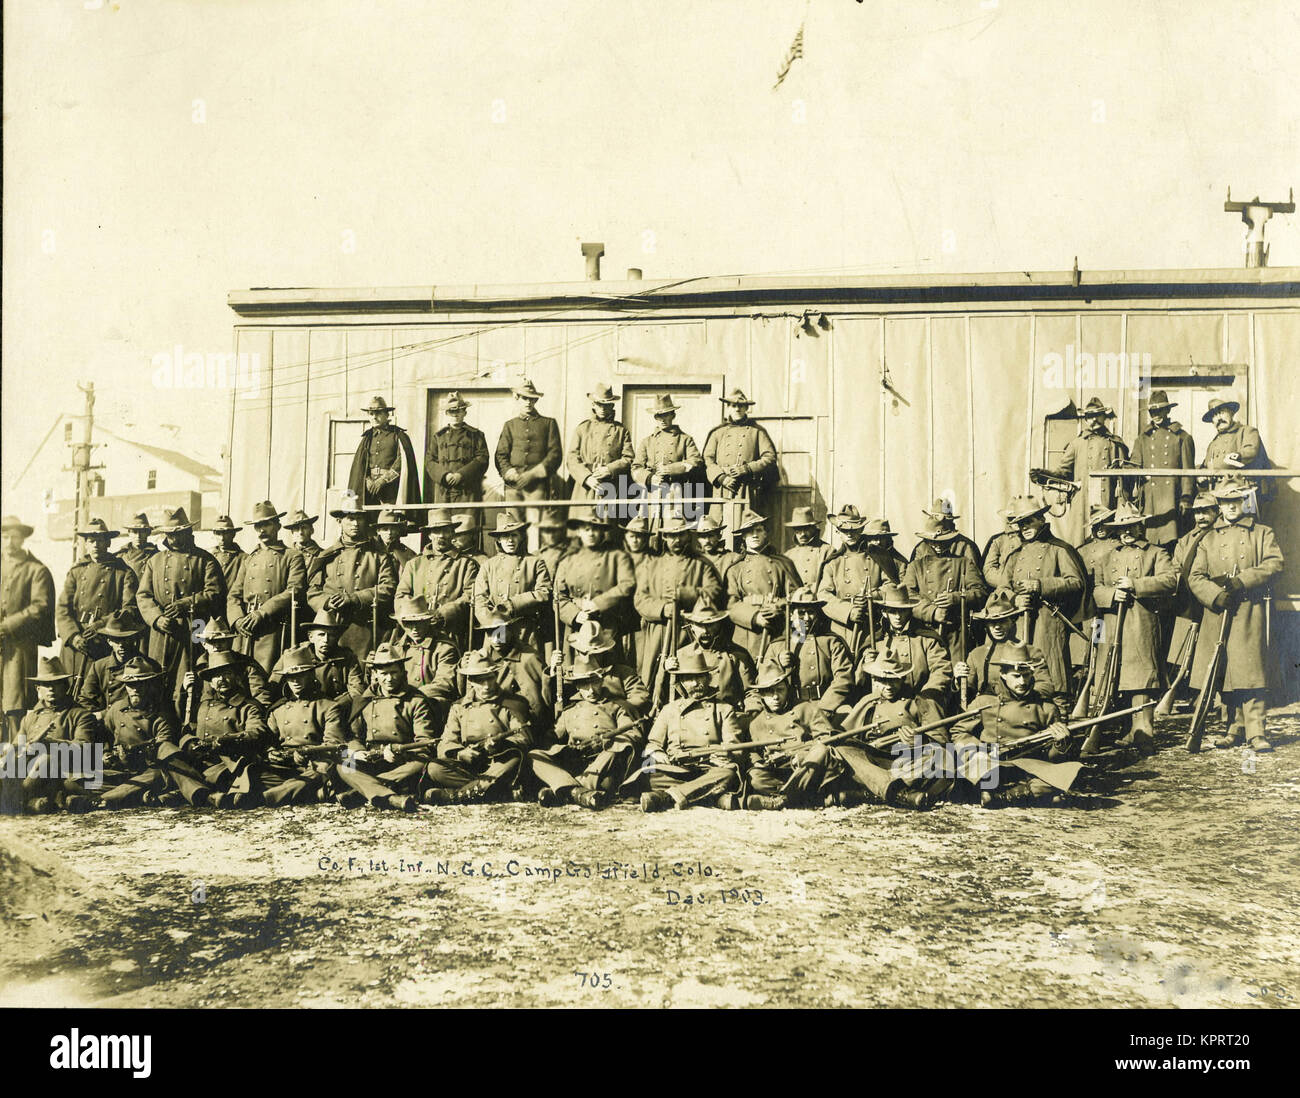 Federal Troops Brought In To Put Down Strikes In Goldfield, Company 'F' 1St Infantry National Guard Of Colorado - Stock Image